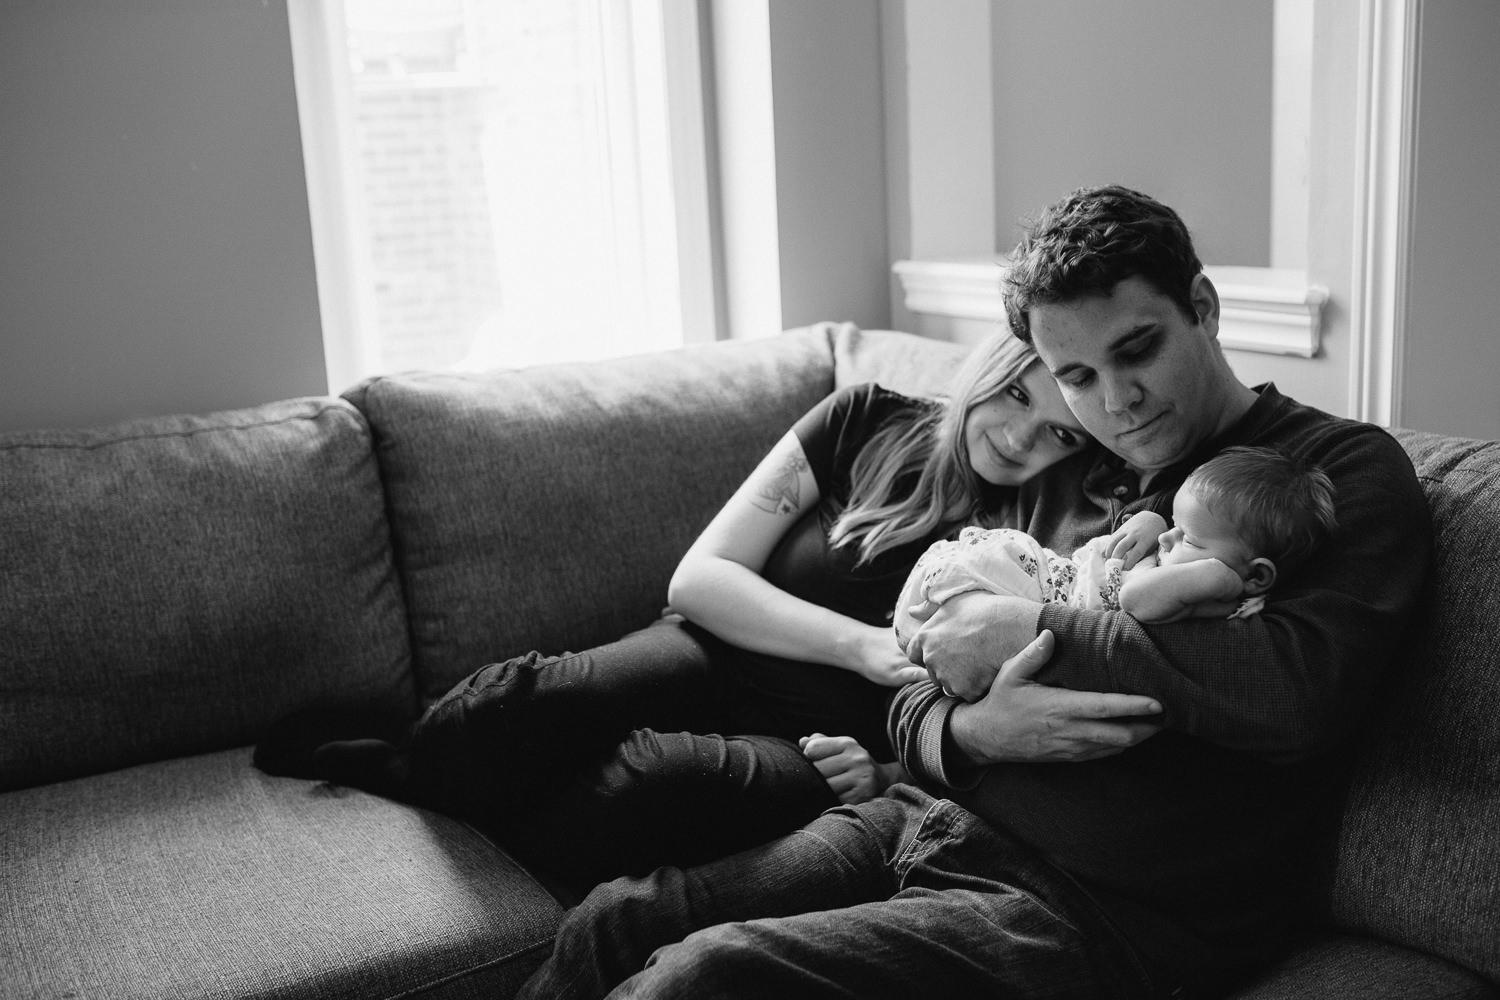 family of 3, new parents sitting on couch holding and looking at 2 week old baby girl - Barrie In-Home Photography